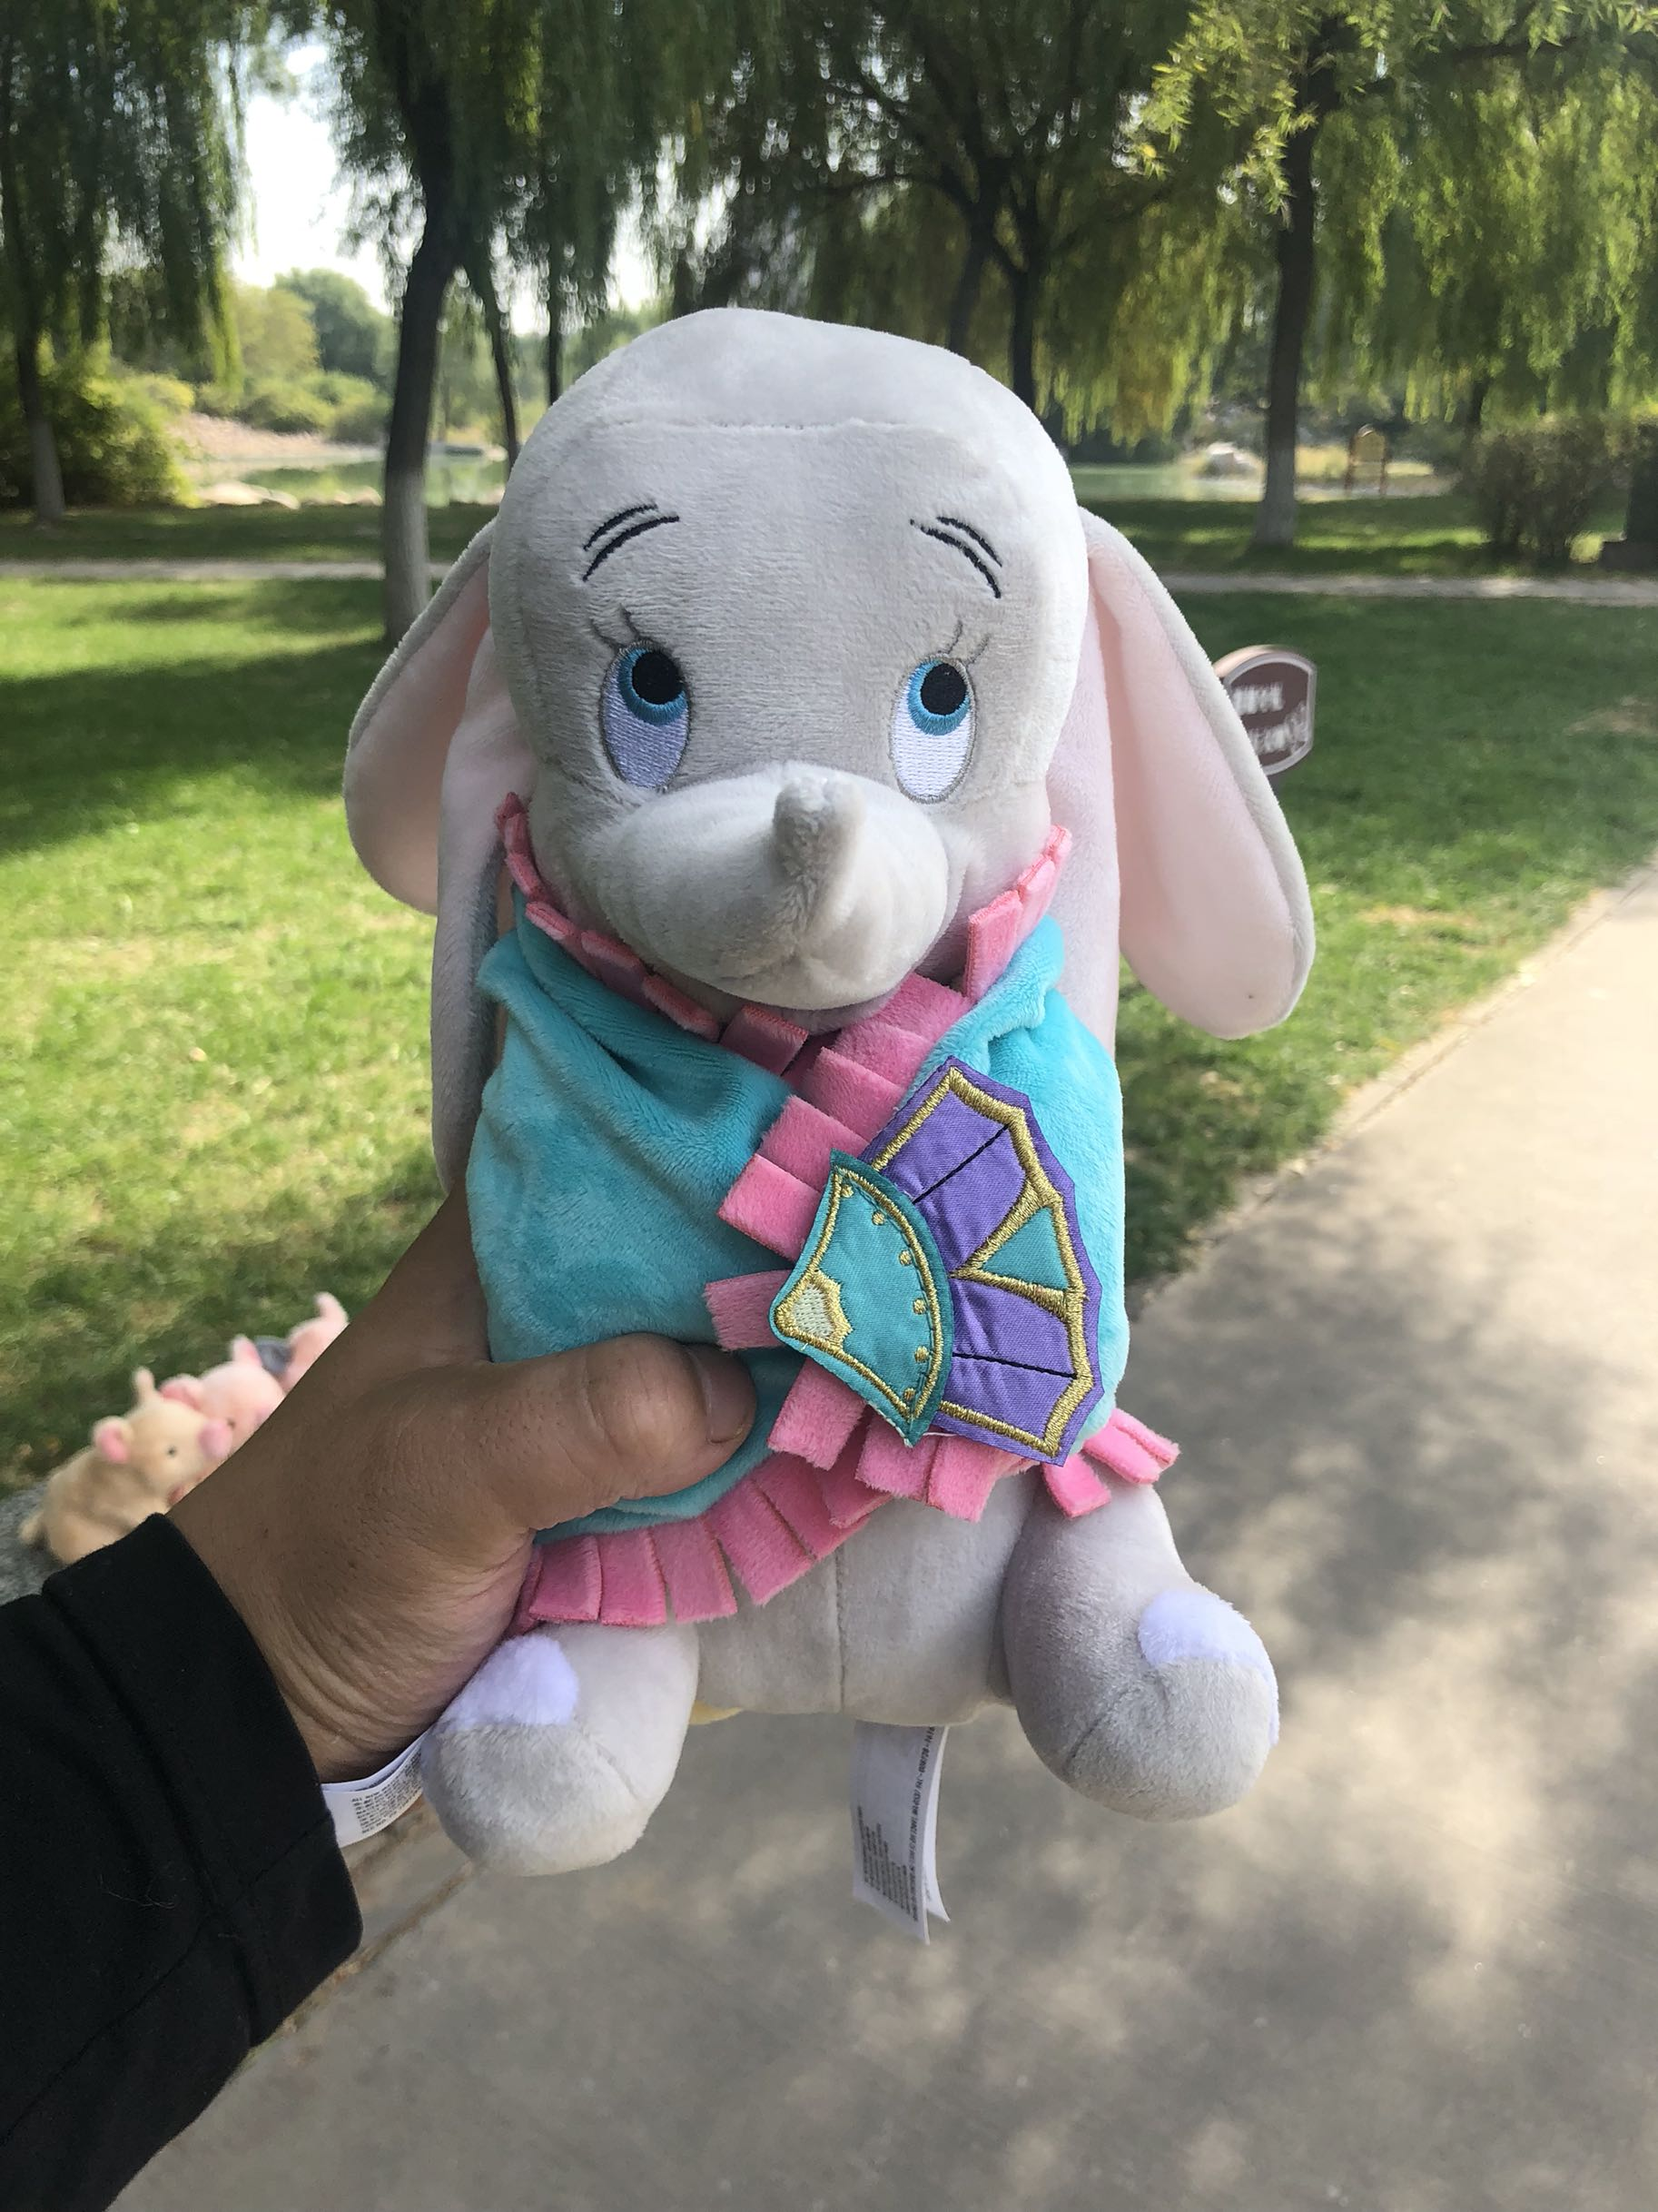 Cute Dumbo Baby Swaddle Elephant Stuff Animal Plush Toy Doll Baby Kids Toys Birthday Gift